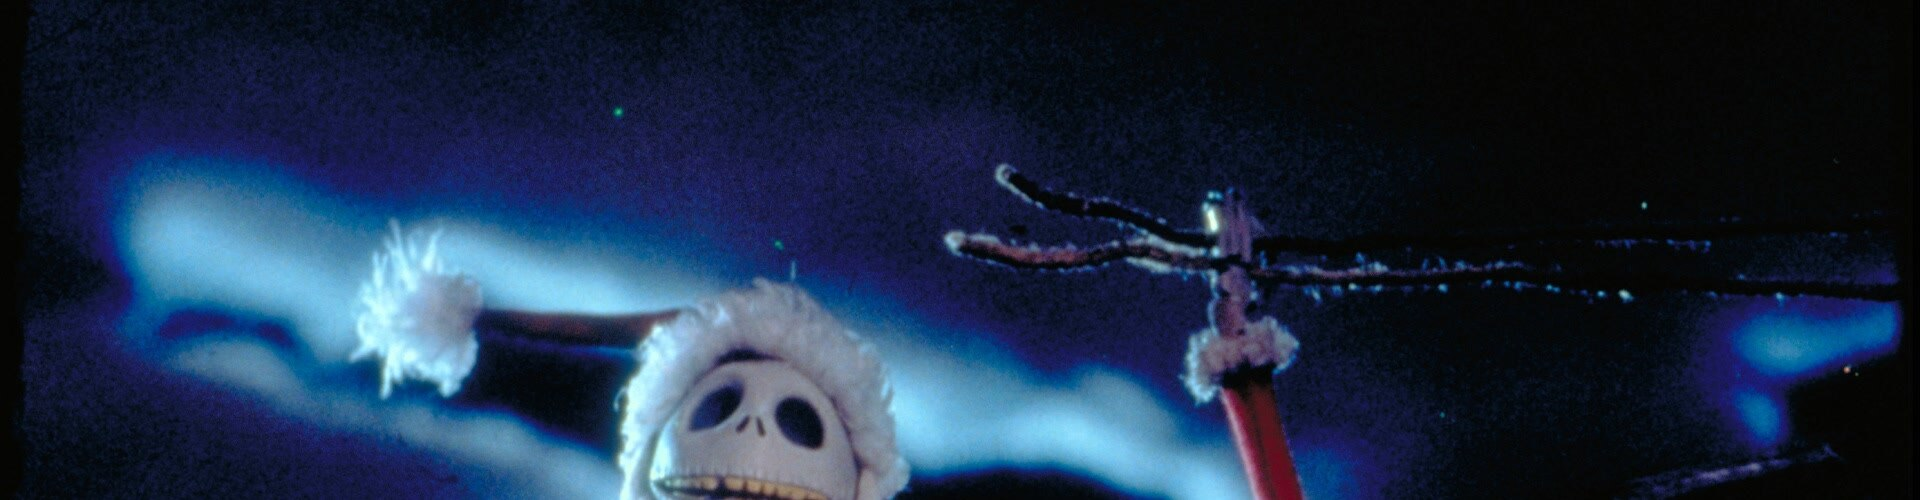 Watch The Nightmare Before Christmas Online - Stream TV On Demand